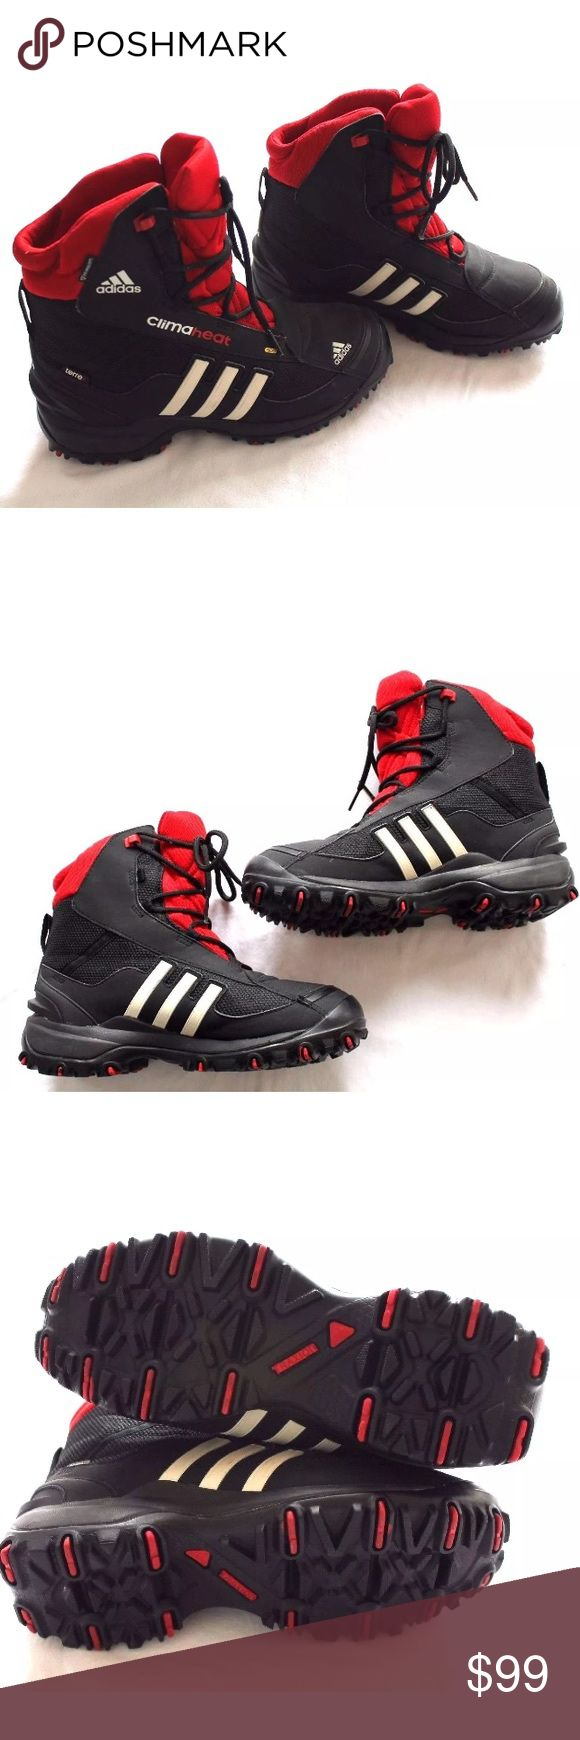 Adidas snow boots black red and white stripes sz 7 used These are a very awesome pair of Adidas athletic Snow boots Men's size 7 synthetic upper lace detailing. Some creases Rubber outsole please check pictures. they are part of the description Adidas Shoes Boots